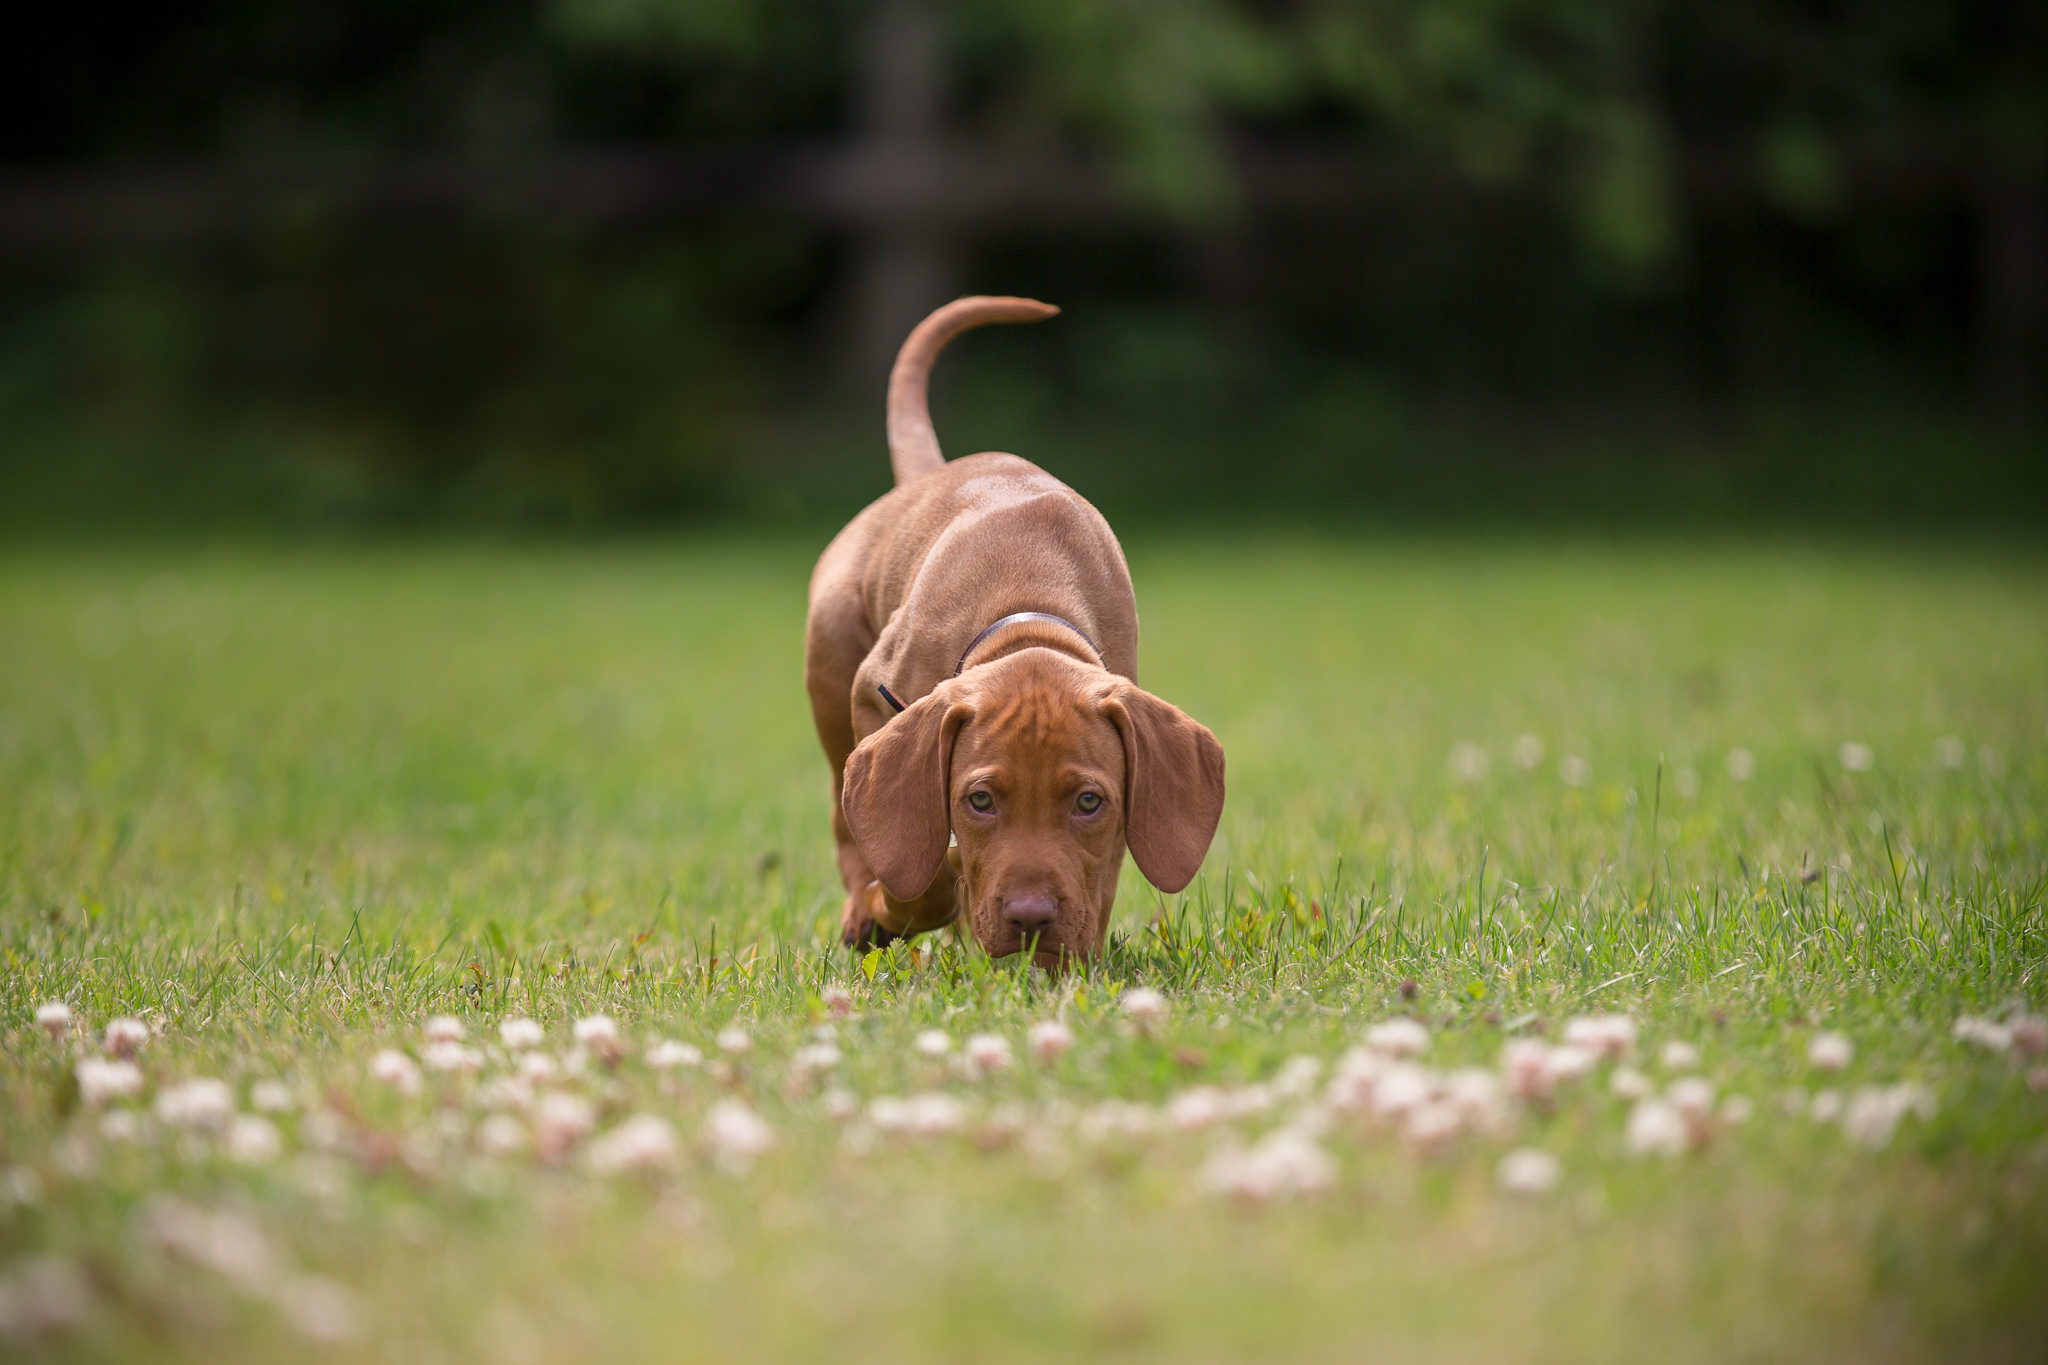 Dog-Photography-Of-Puppy-In-Berkshire